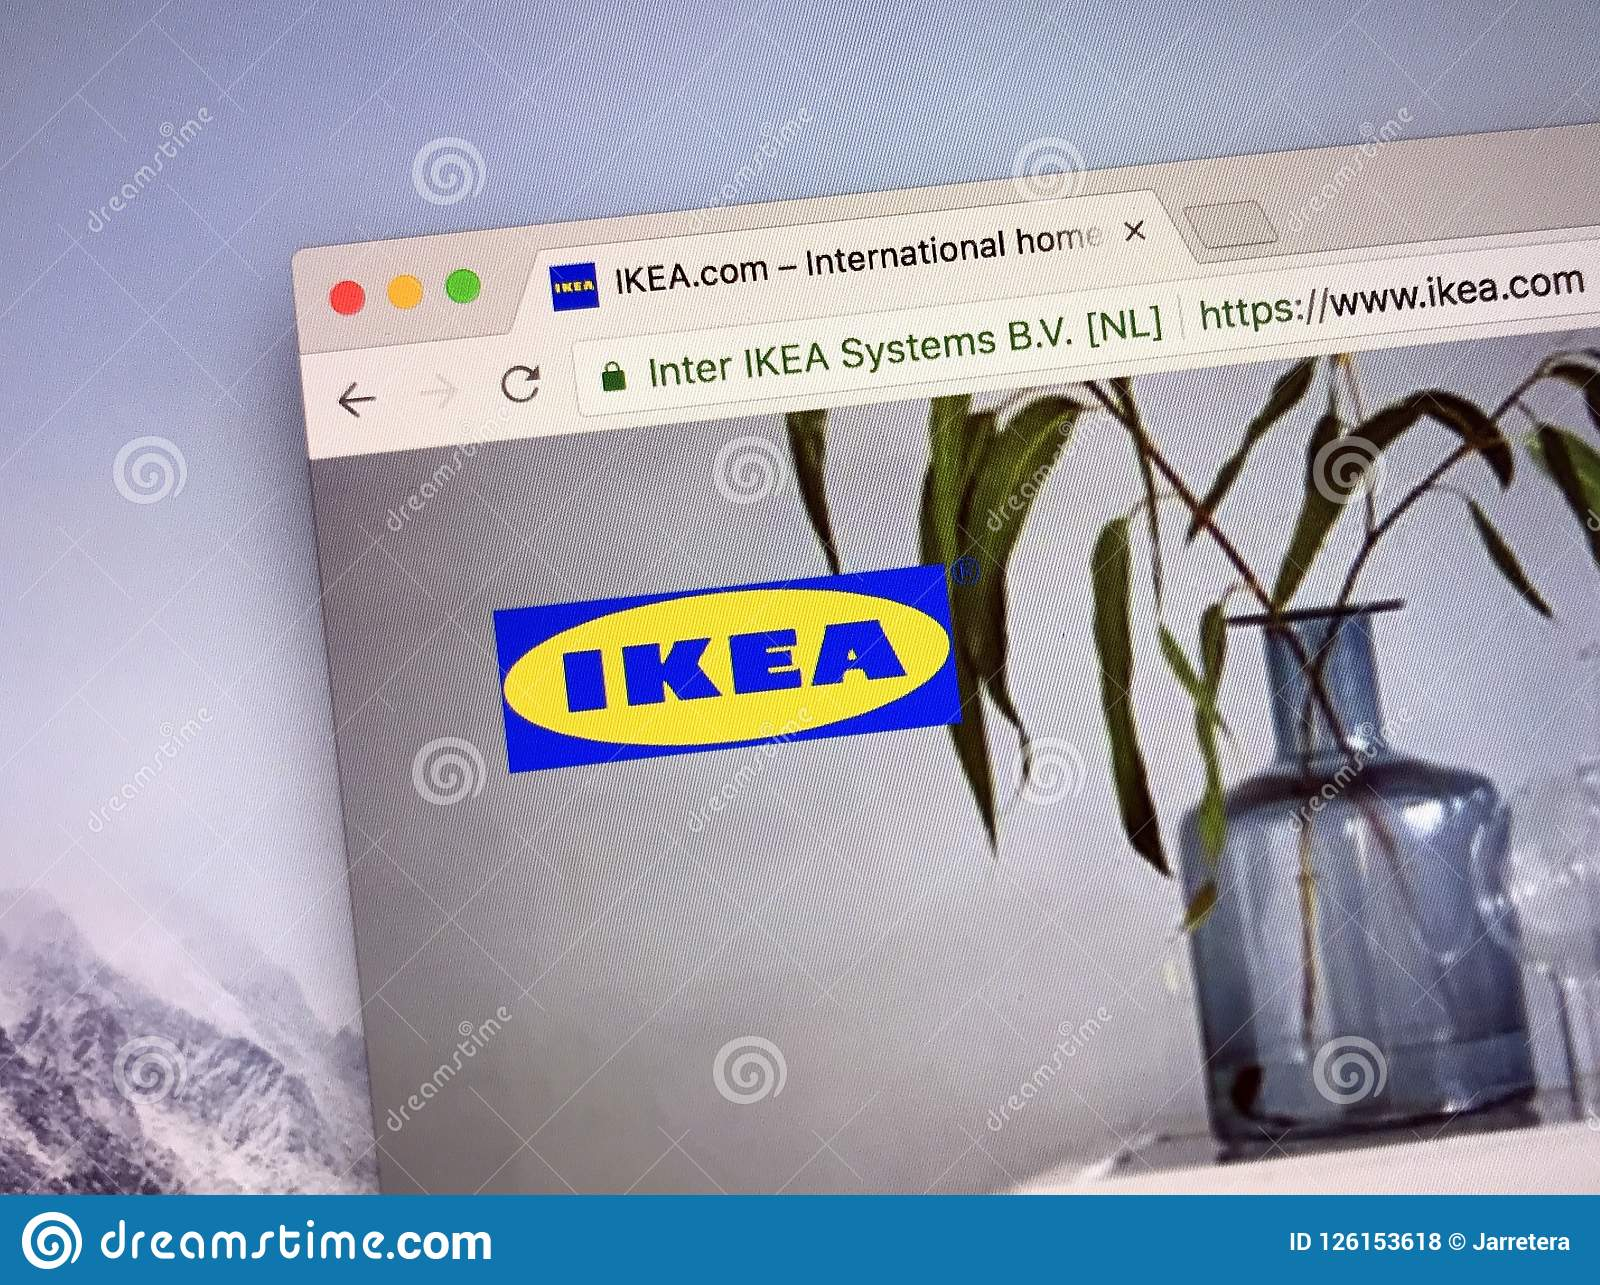 Www Ikea Nl Homepage Of Ikea Editorial Stock Photo Image Of Business 126153618